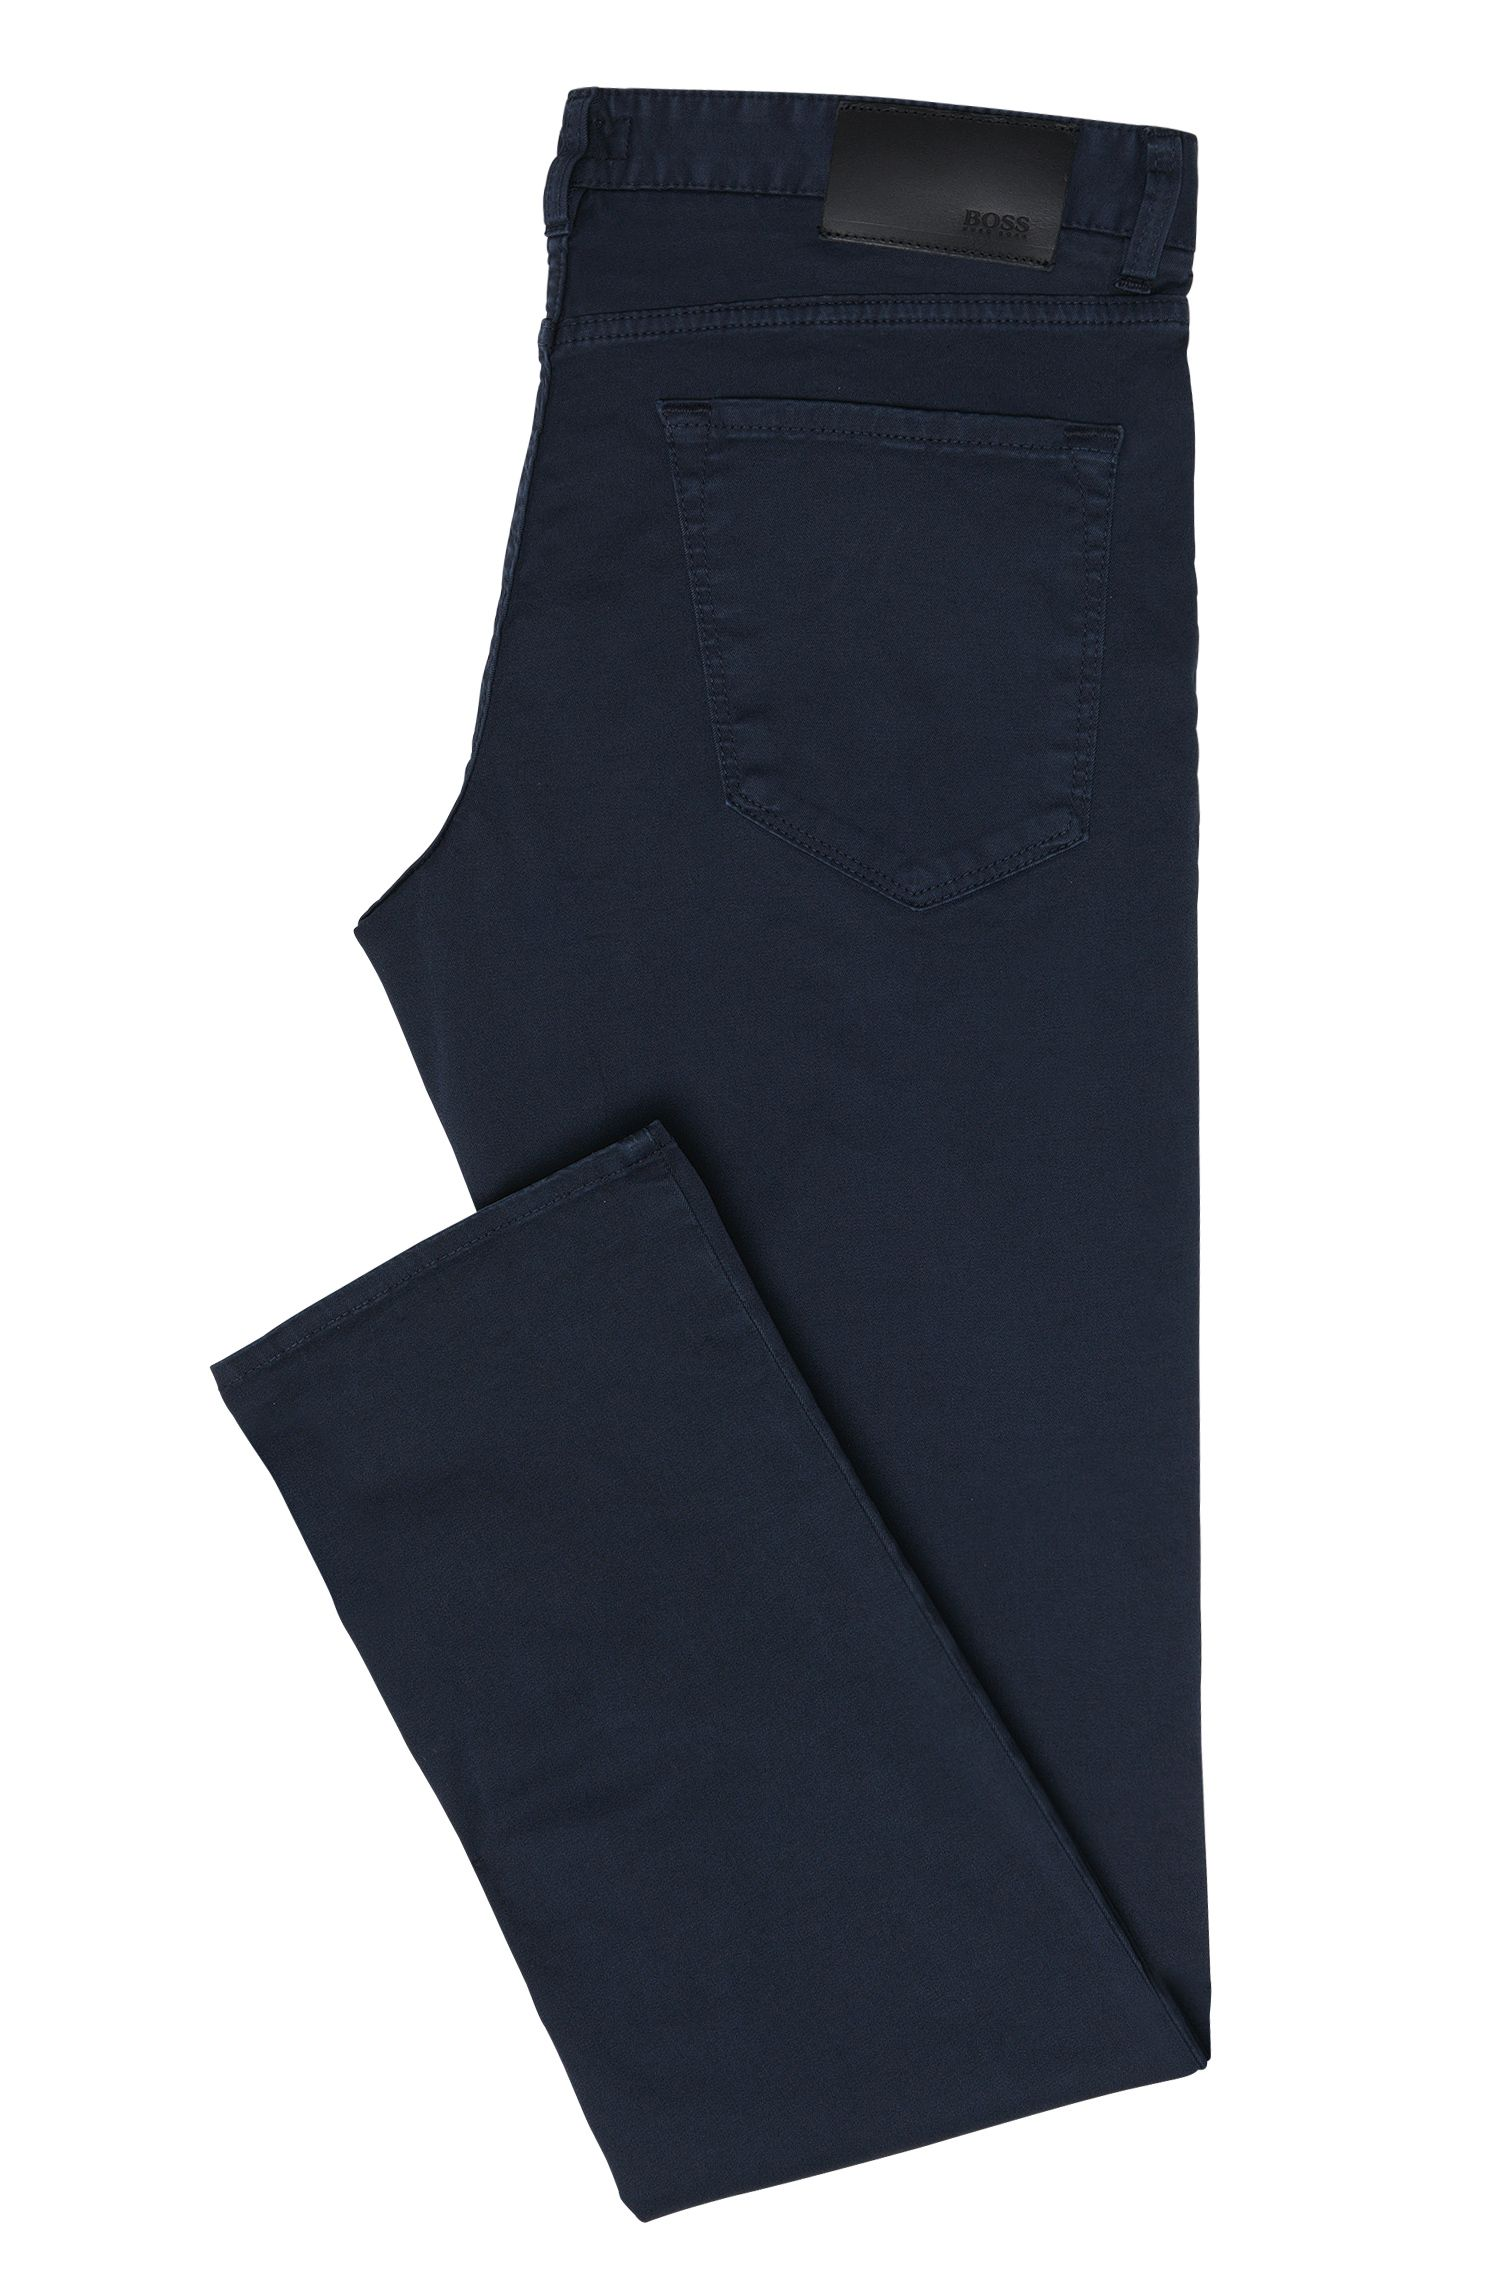 Regular-Fit Hose aus Stretch-Baumwolle im Five-Pocket-Stil: 'Maine3-20'